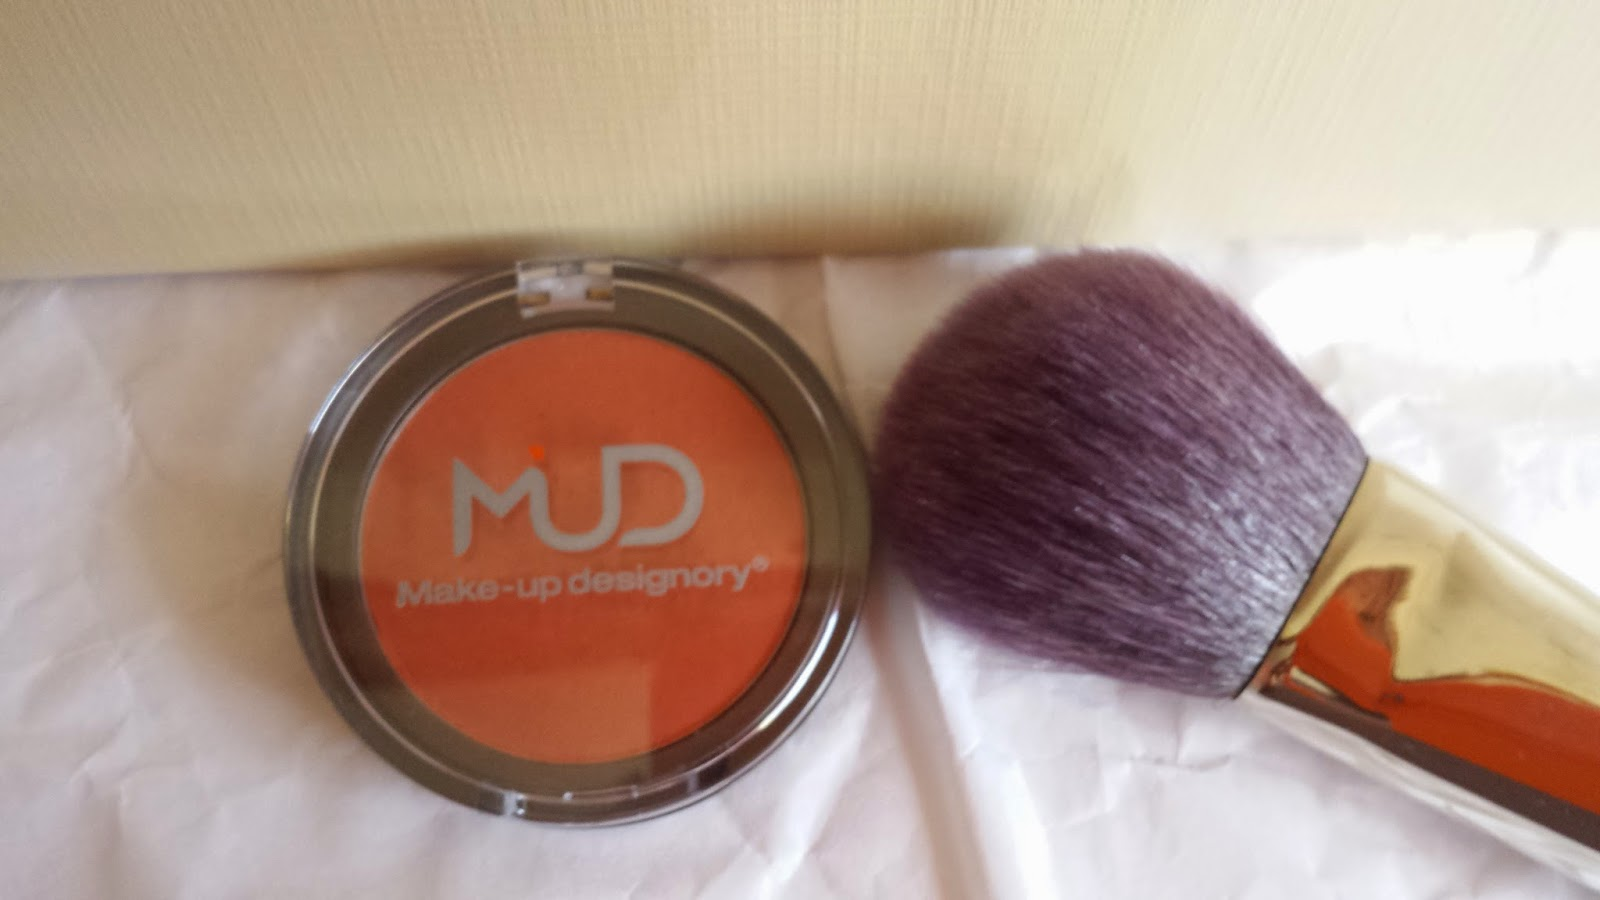 Make-Up Designory Cheek Color 'Pumpkin' - www.modenmakeup.com